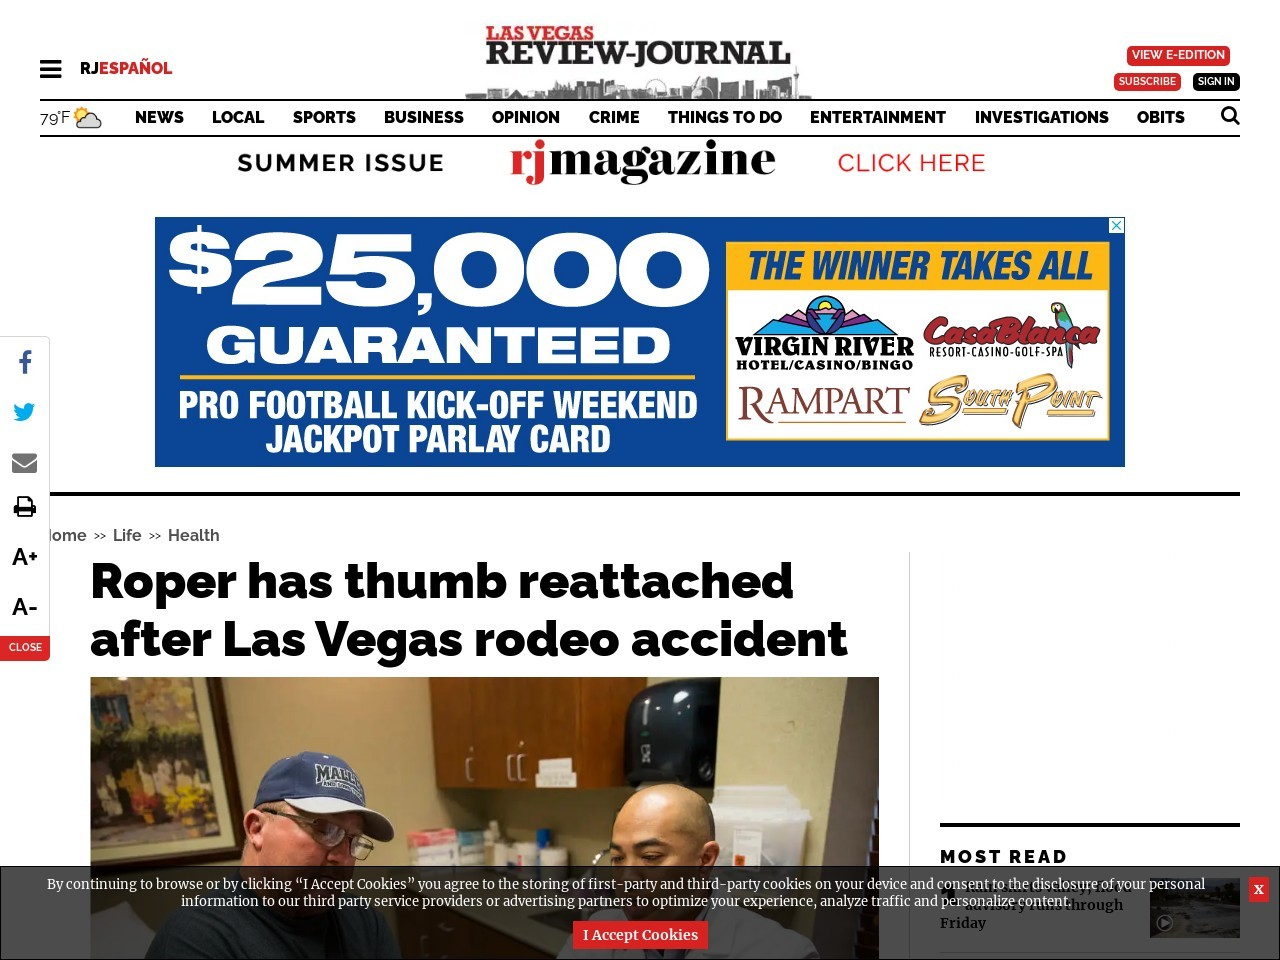 Roper has thumb reattached after Las Vegas rodeo accident